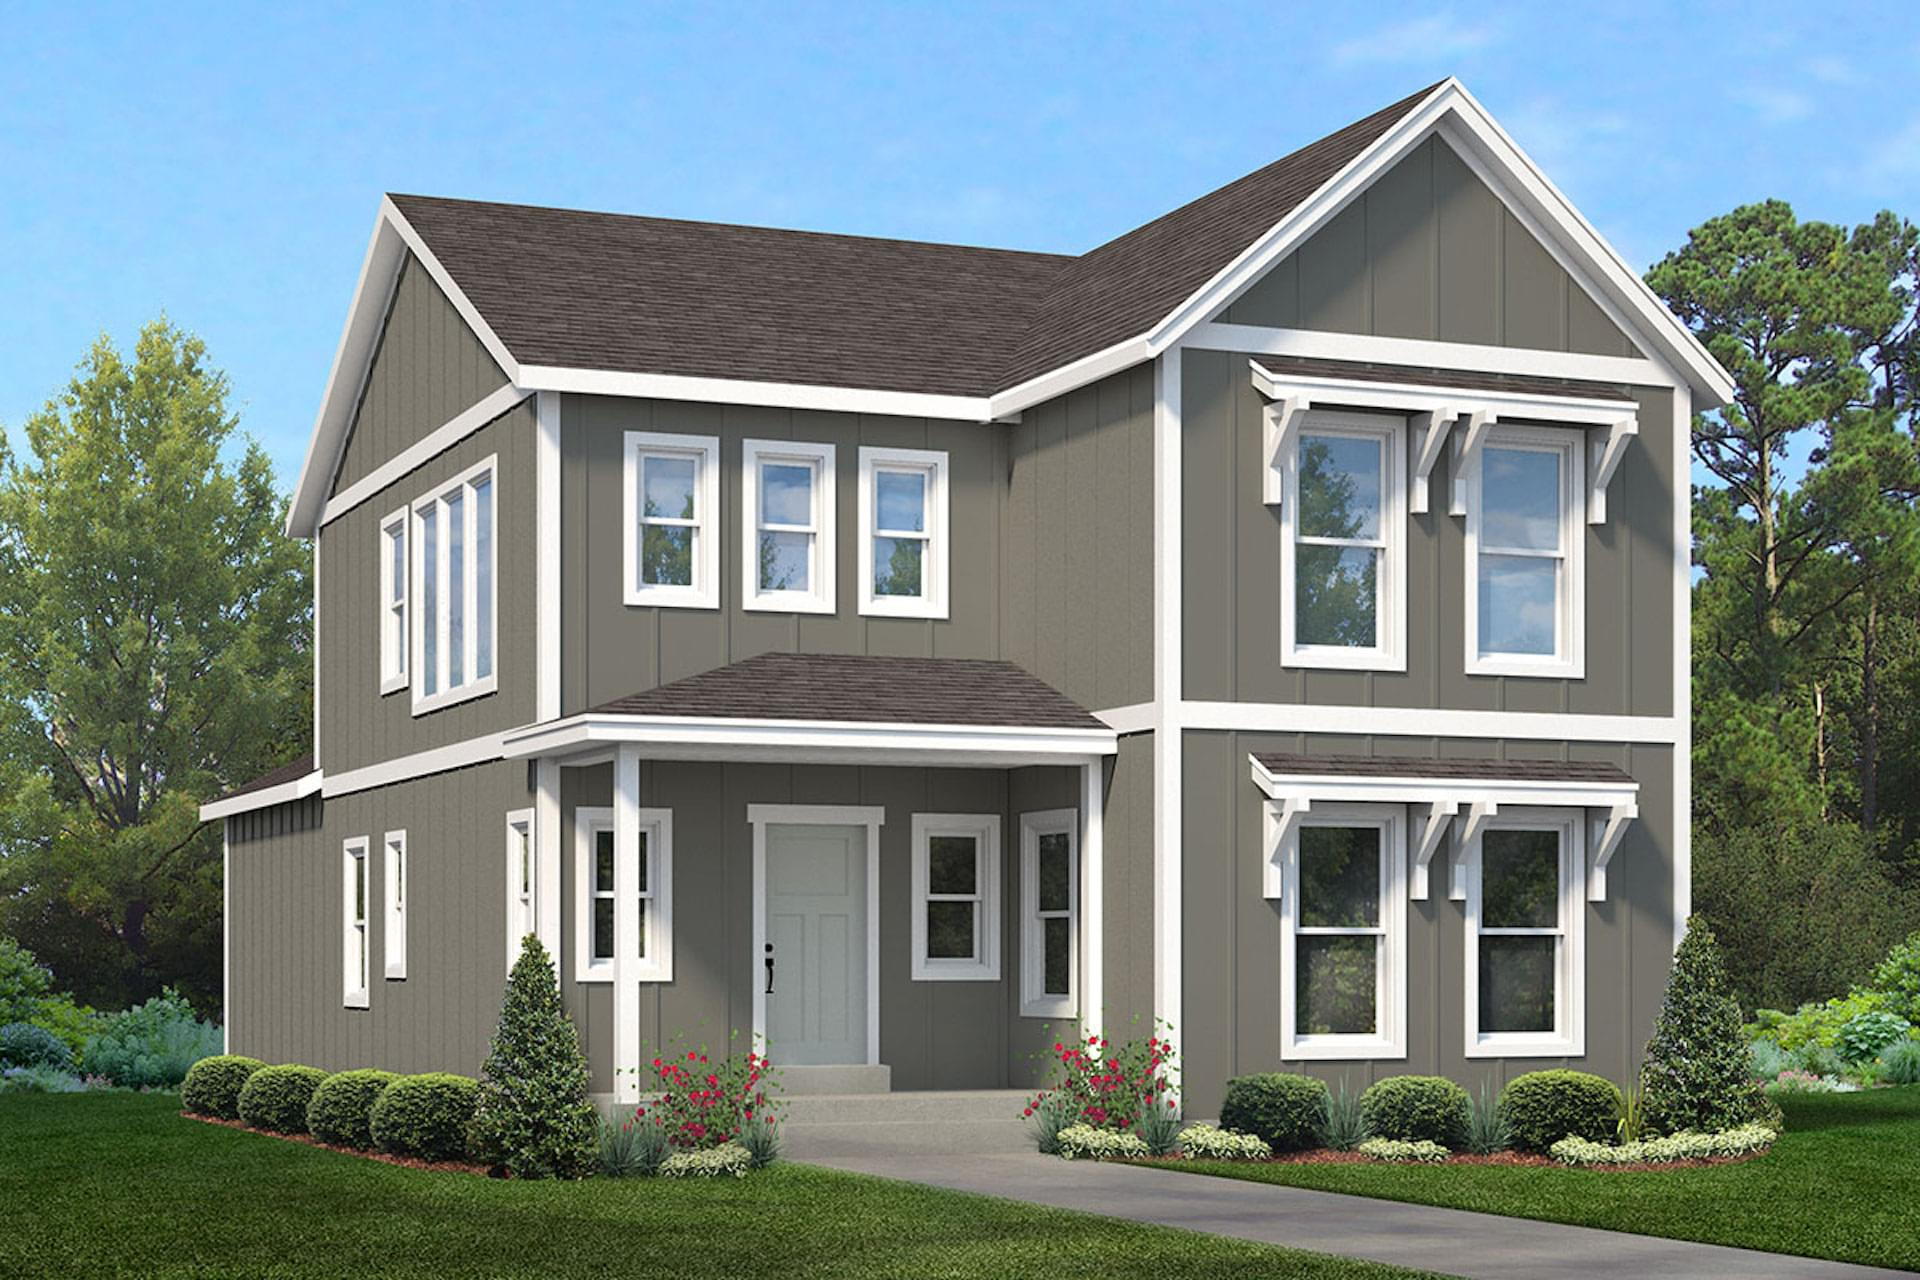 The Greenside new home floorplan in Utah